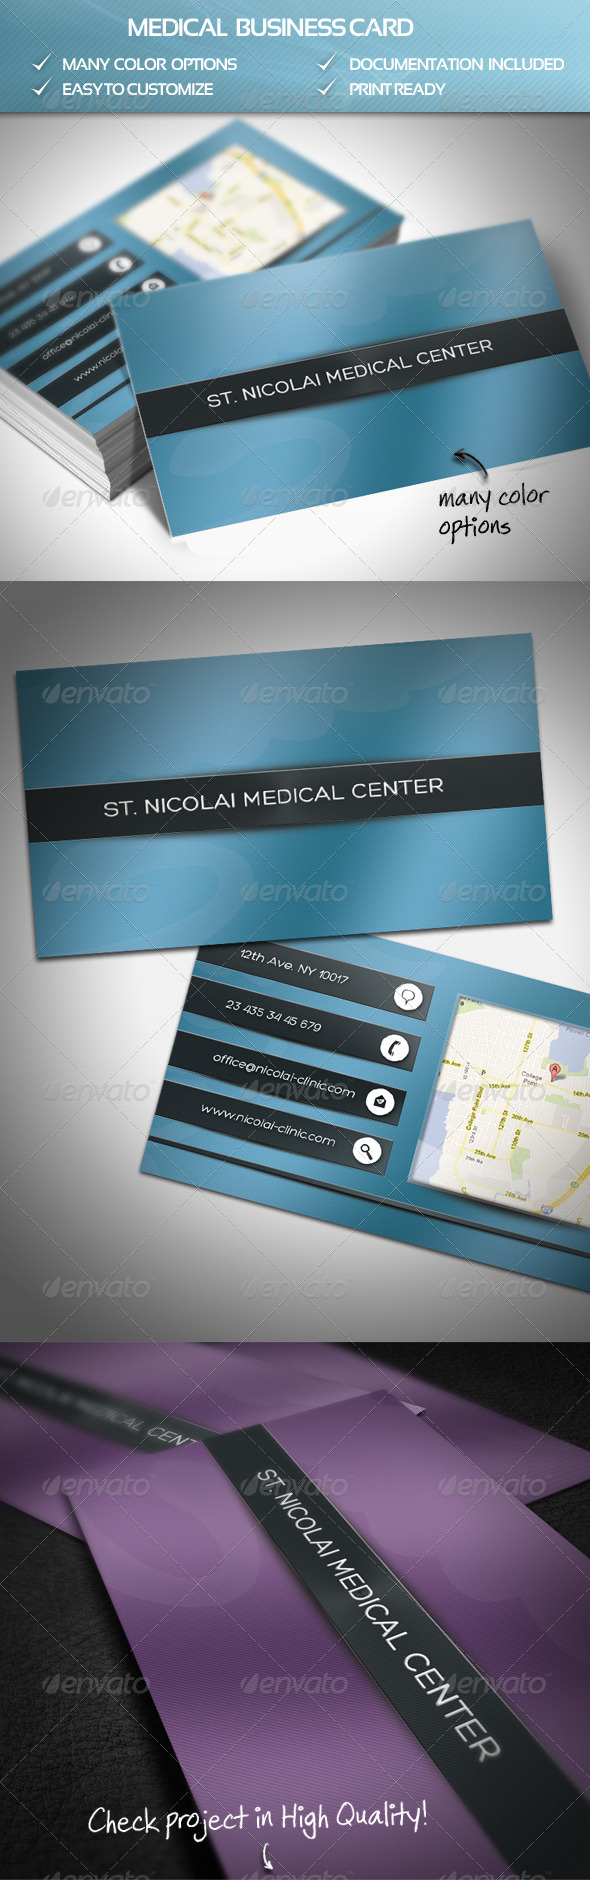 GraphicRiver Medical Business Card 4228622